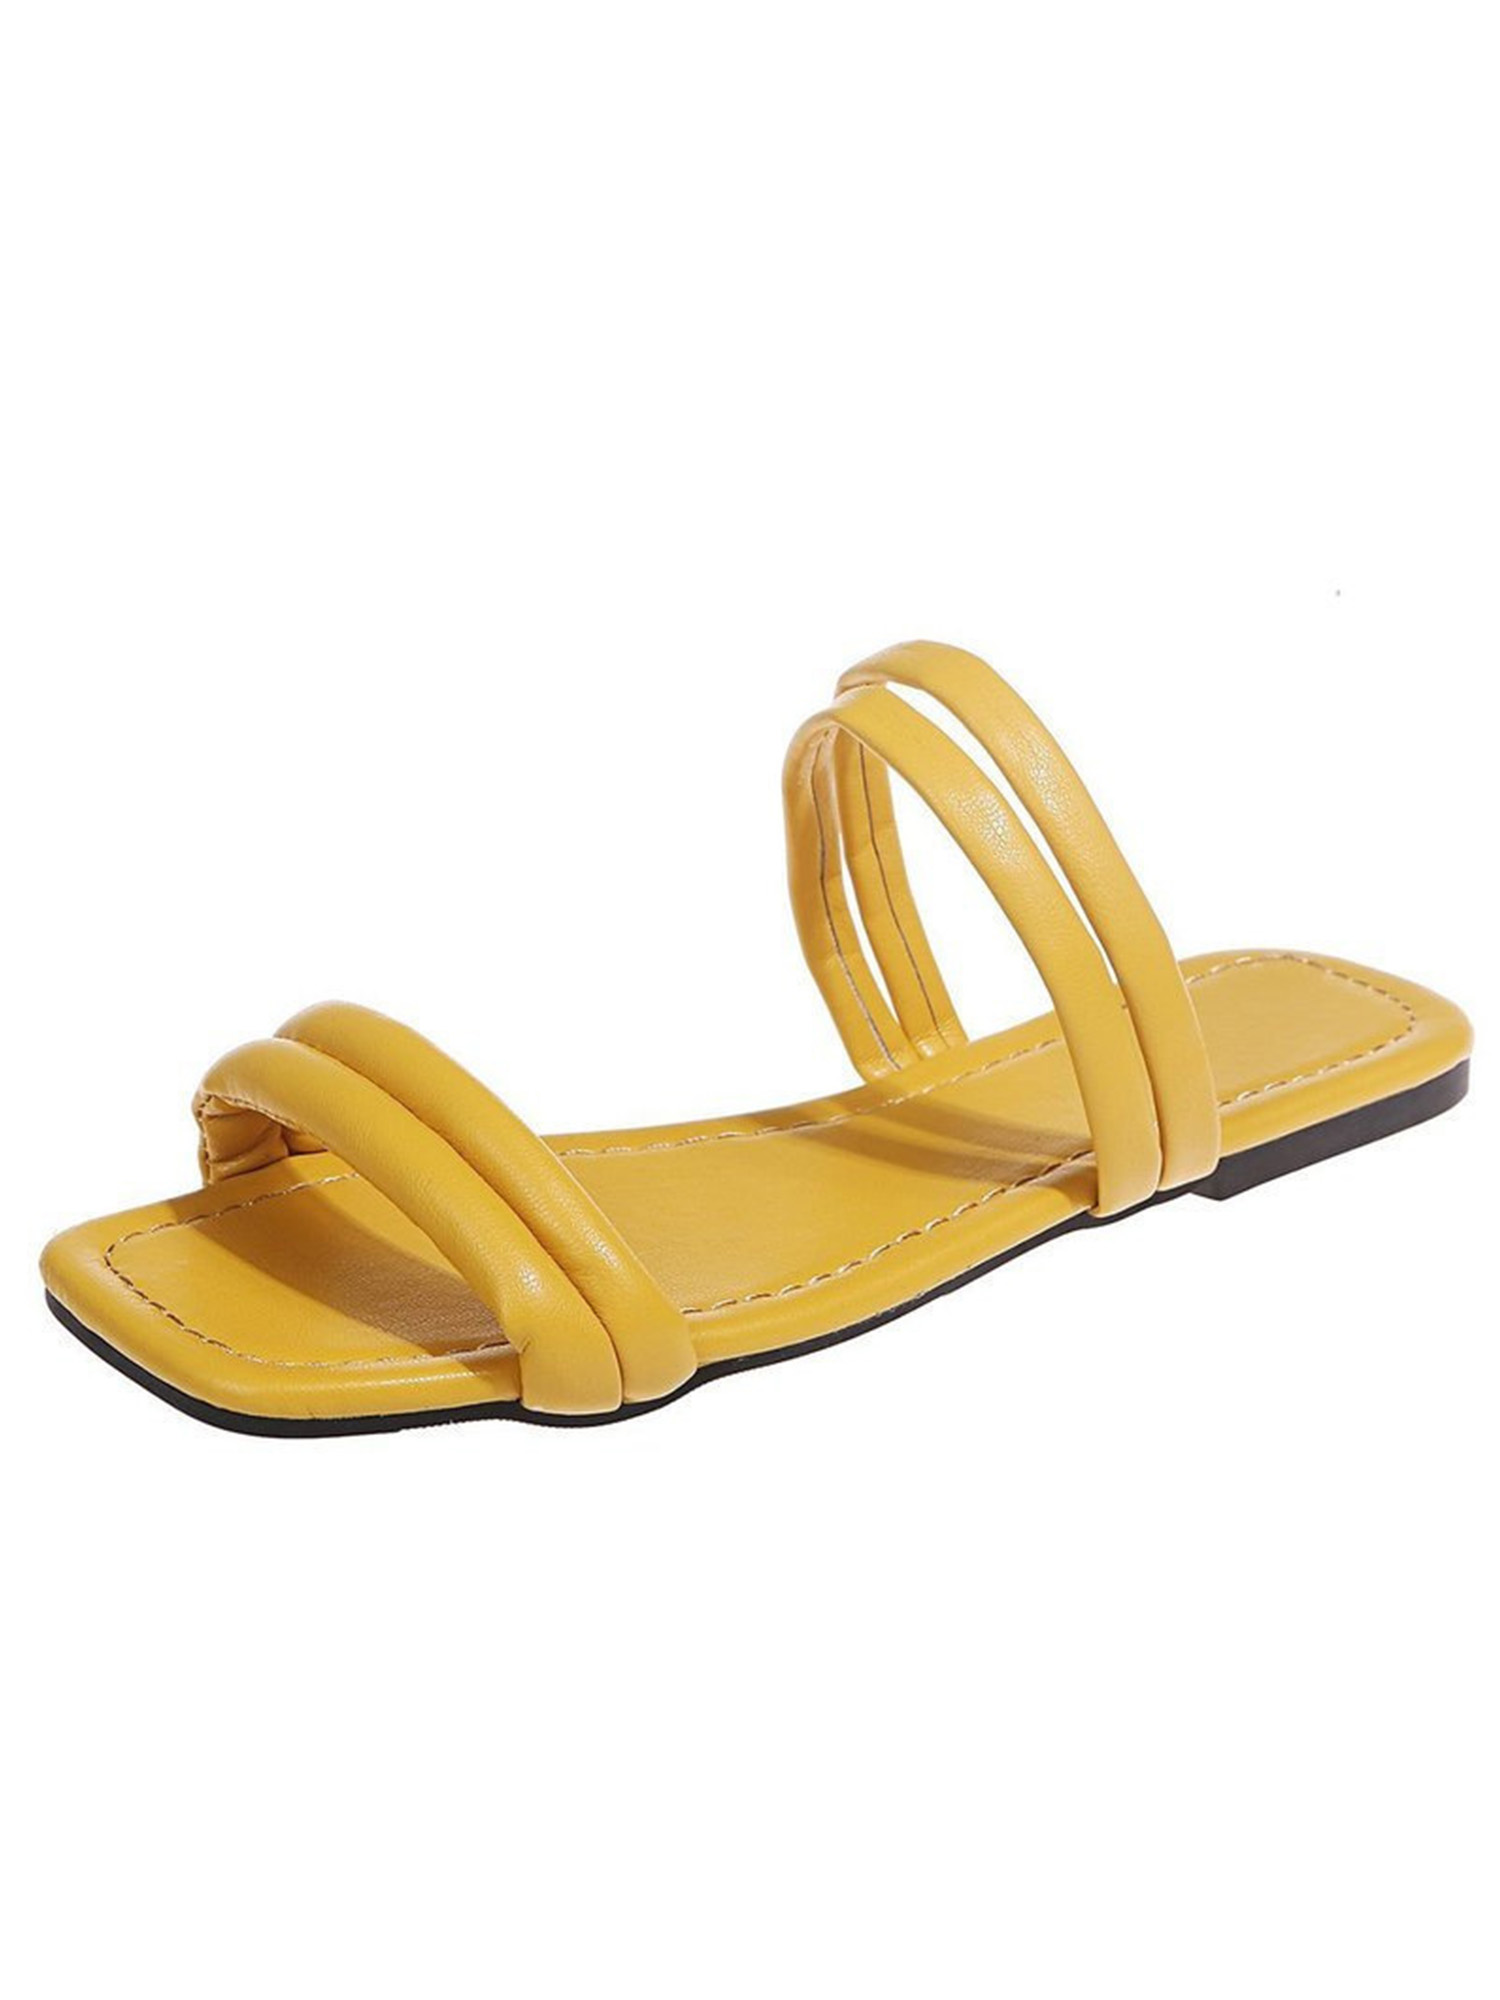 CALEB-10 New Flats Sandals Buckle Gladiator Party Beach Women Shoes Yellow 6